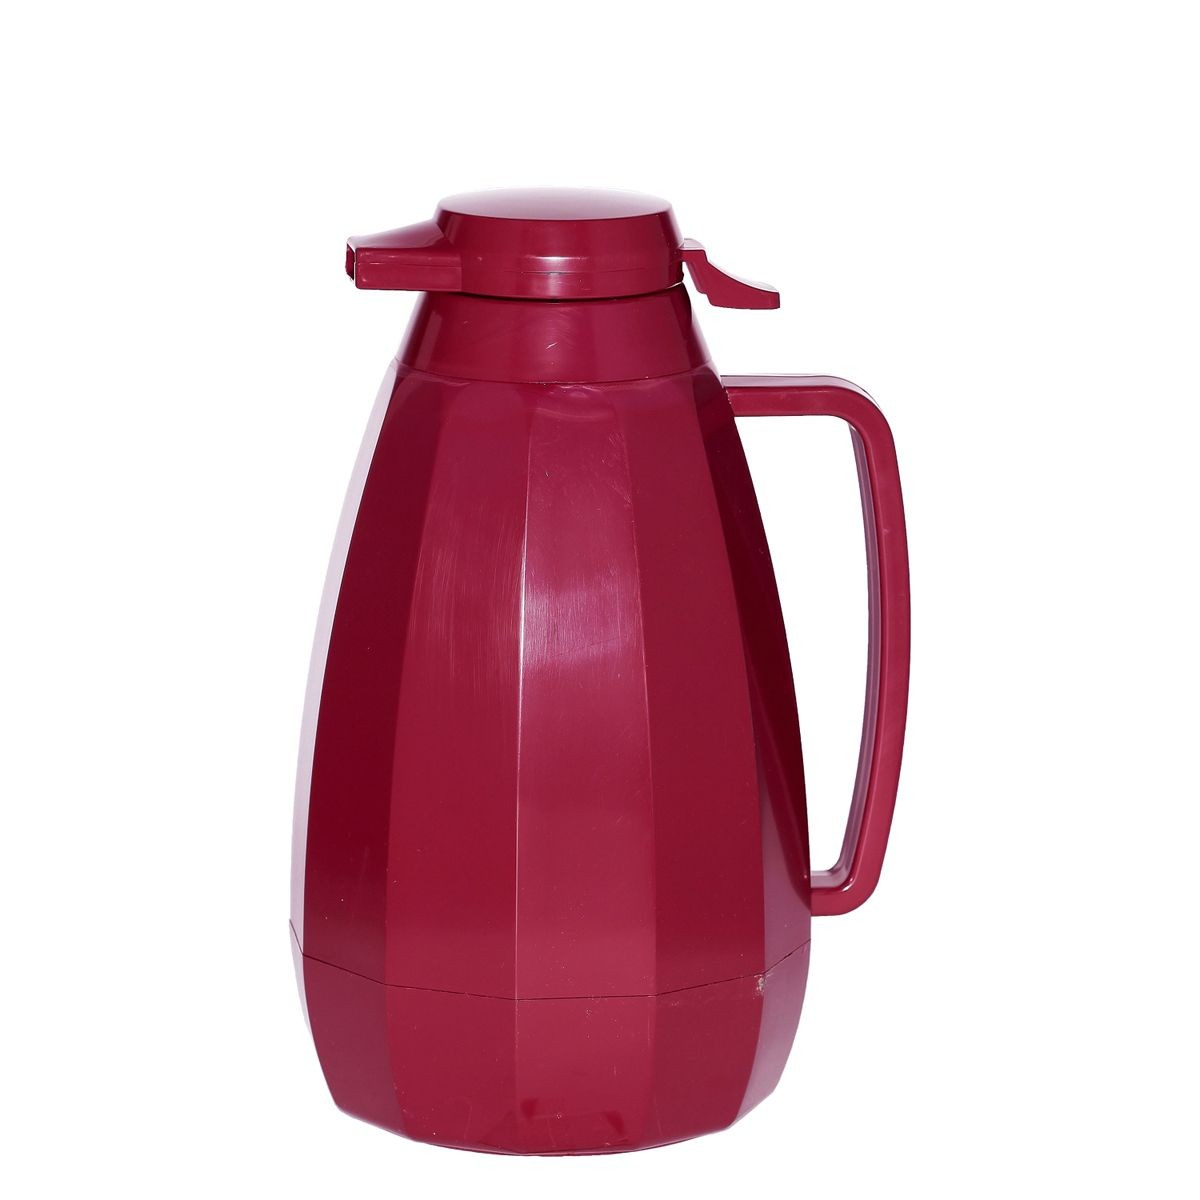 Service Ideas NG421BU New Generation Burgundy Coffee Server, 2 Liter  (68 oz.)